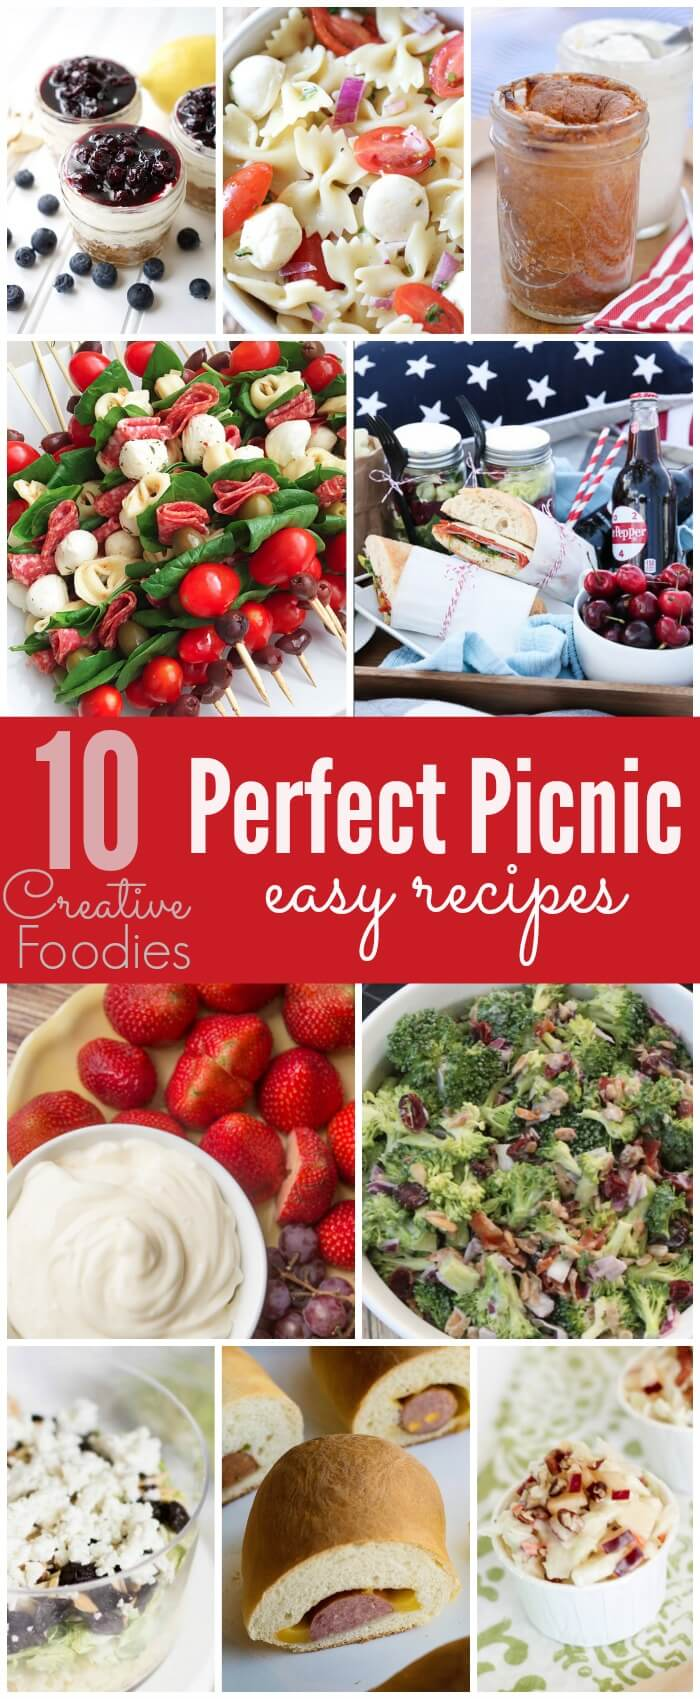 10 Easy Picnic Recipes